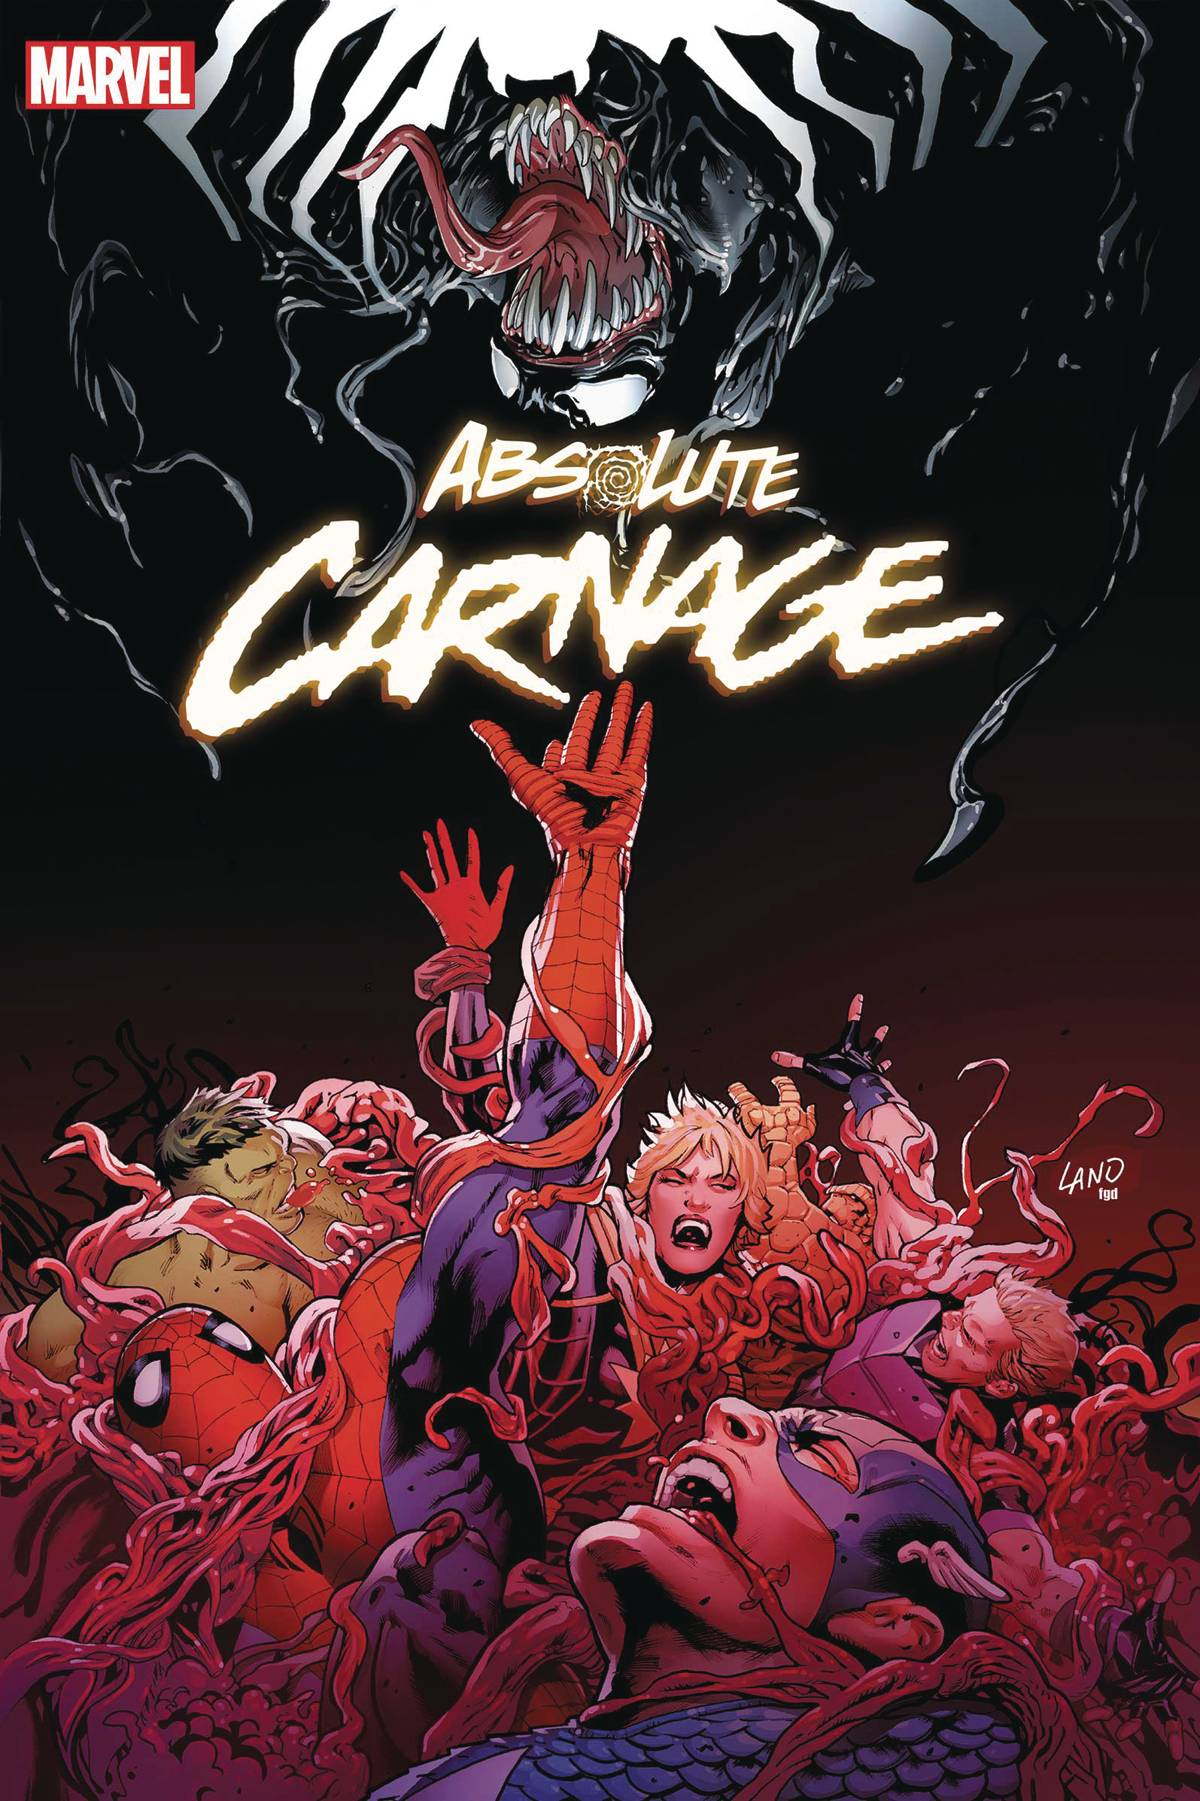 11/20/2019 ABSOLUTE CARNAGE #5 (OF 5) LAND VAR AC